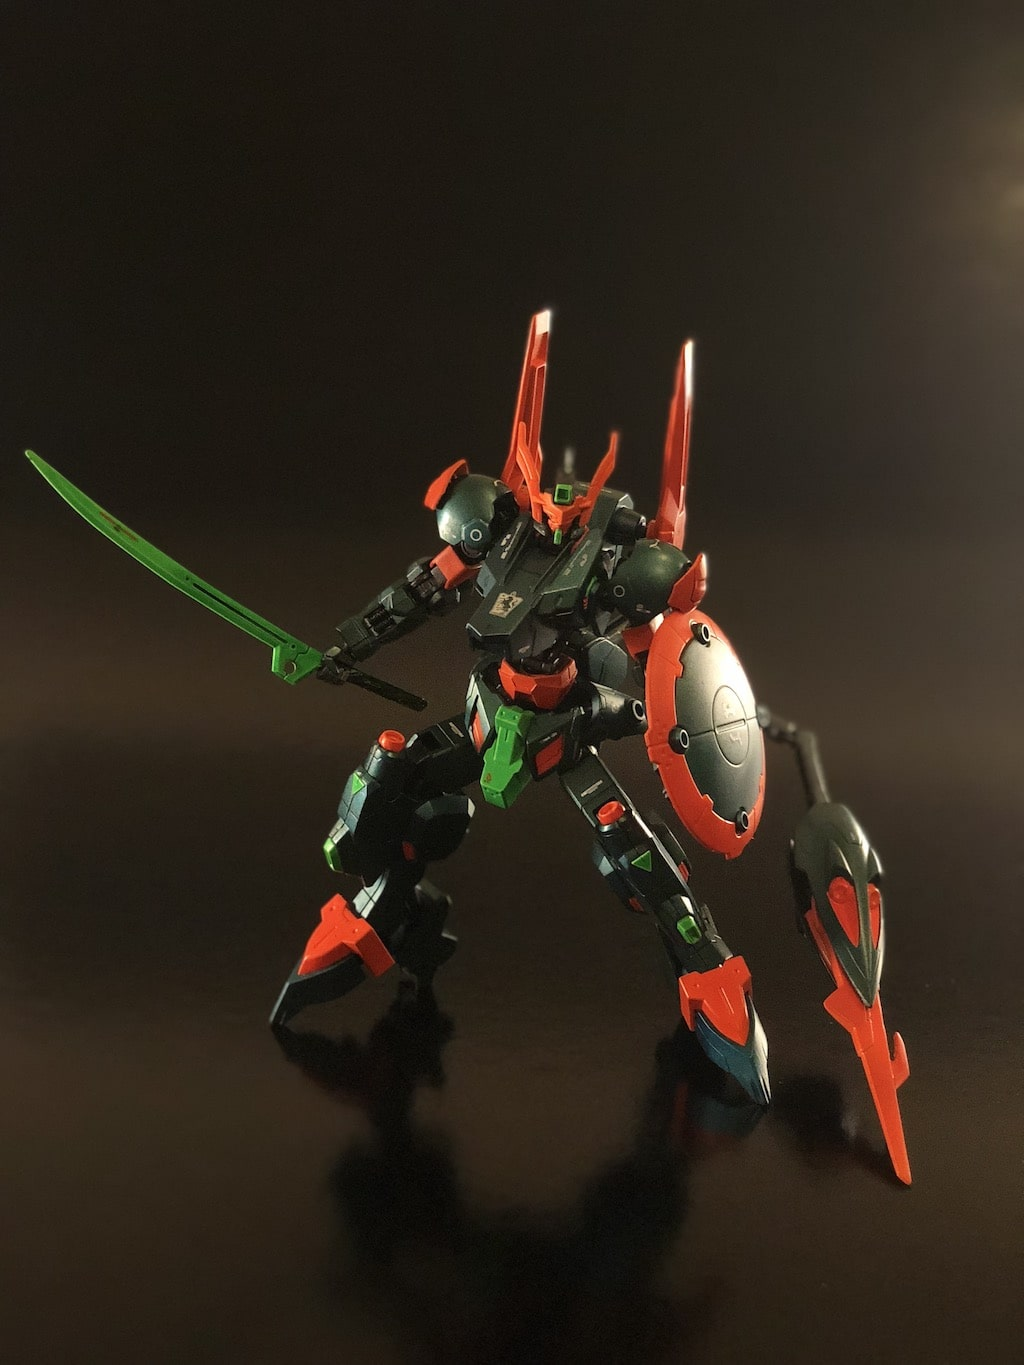 Chameleon Gunpla - Airbrushed